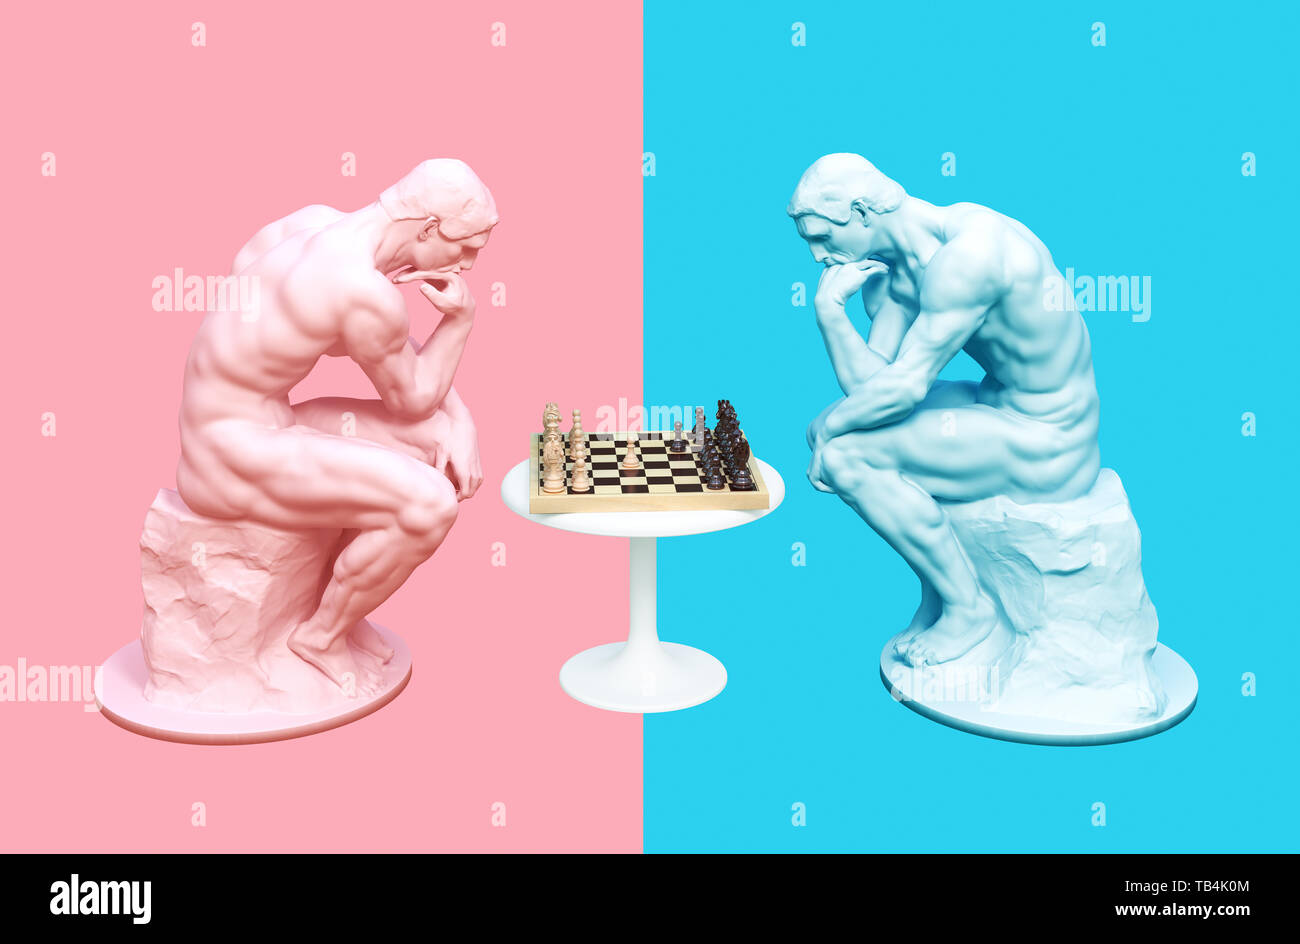 Two Thinkers Pondering The Chess Game On Pink And Blue Backgrounds. 3D Illustration. - Stock Image